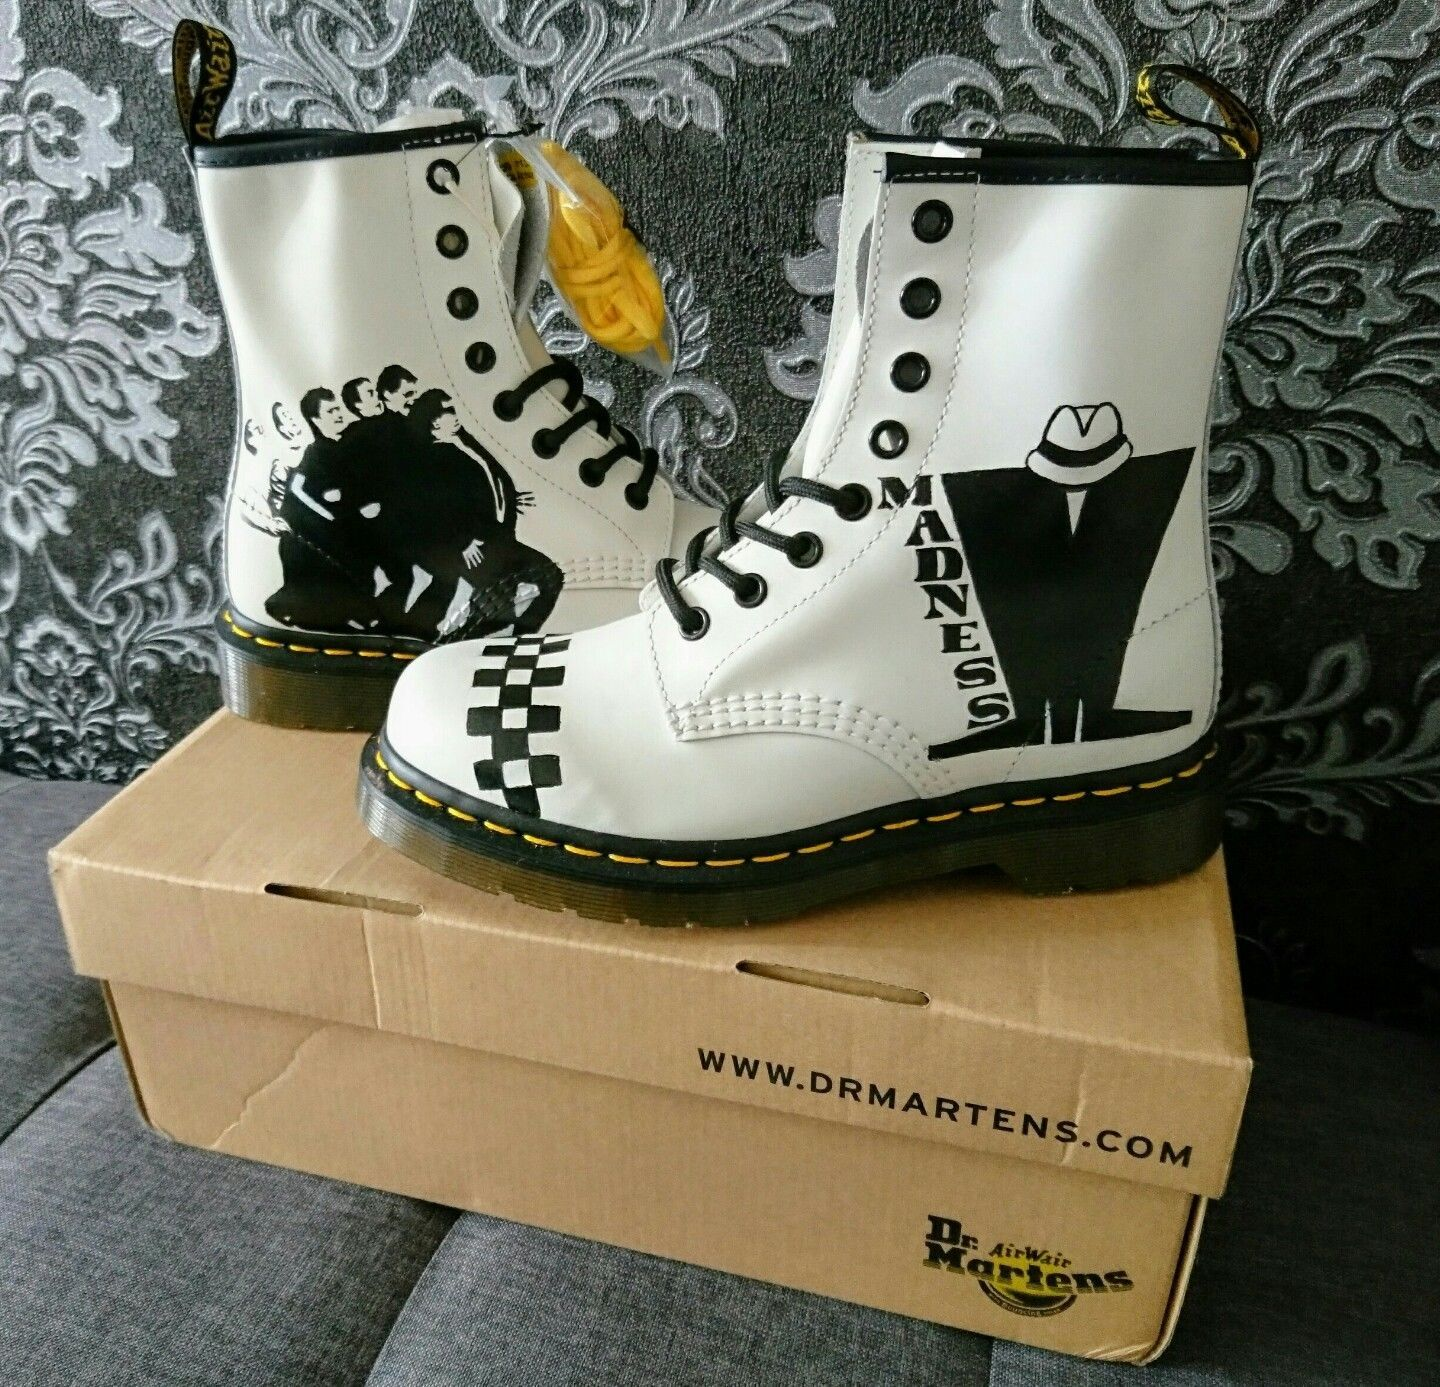 Custom Madness Dr Martens boots adult size 3 uk *brand new